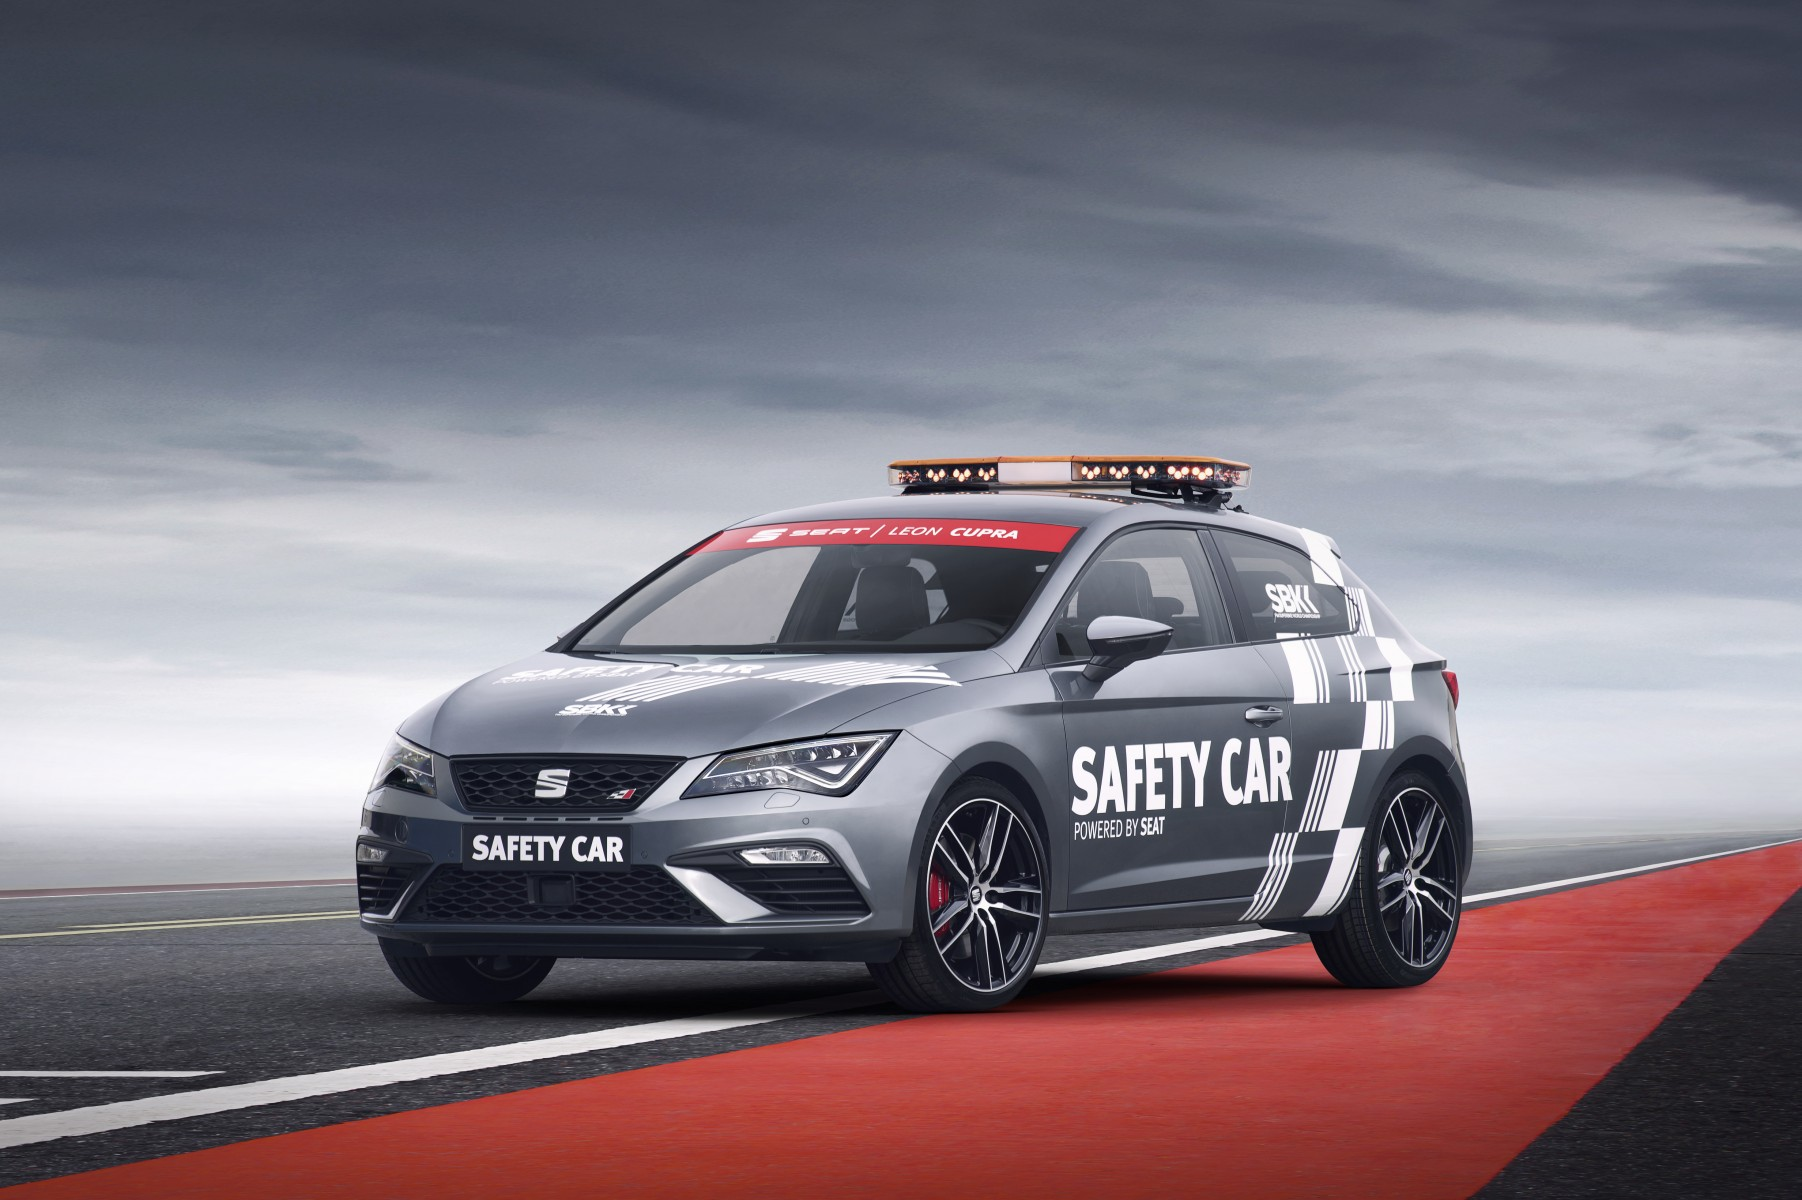 SEAT Leon Cupra 300 official safety car WK Superbike